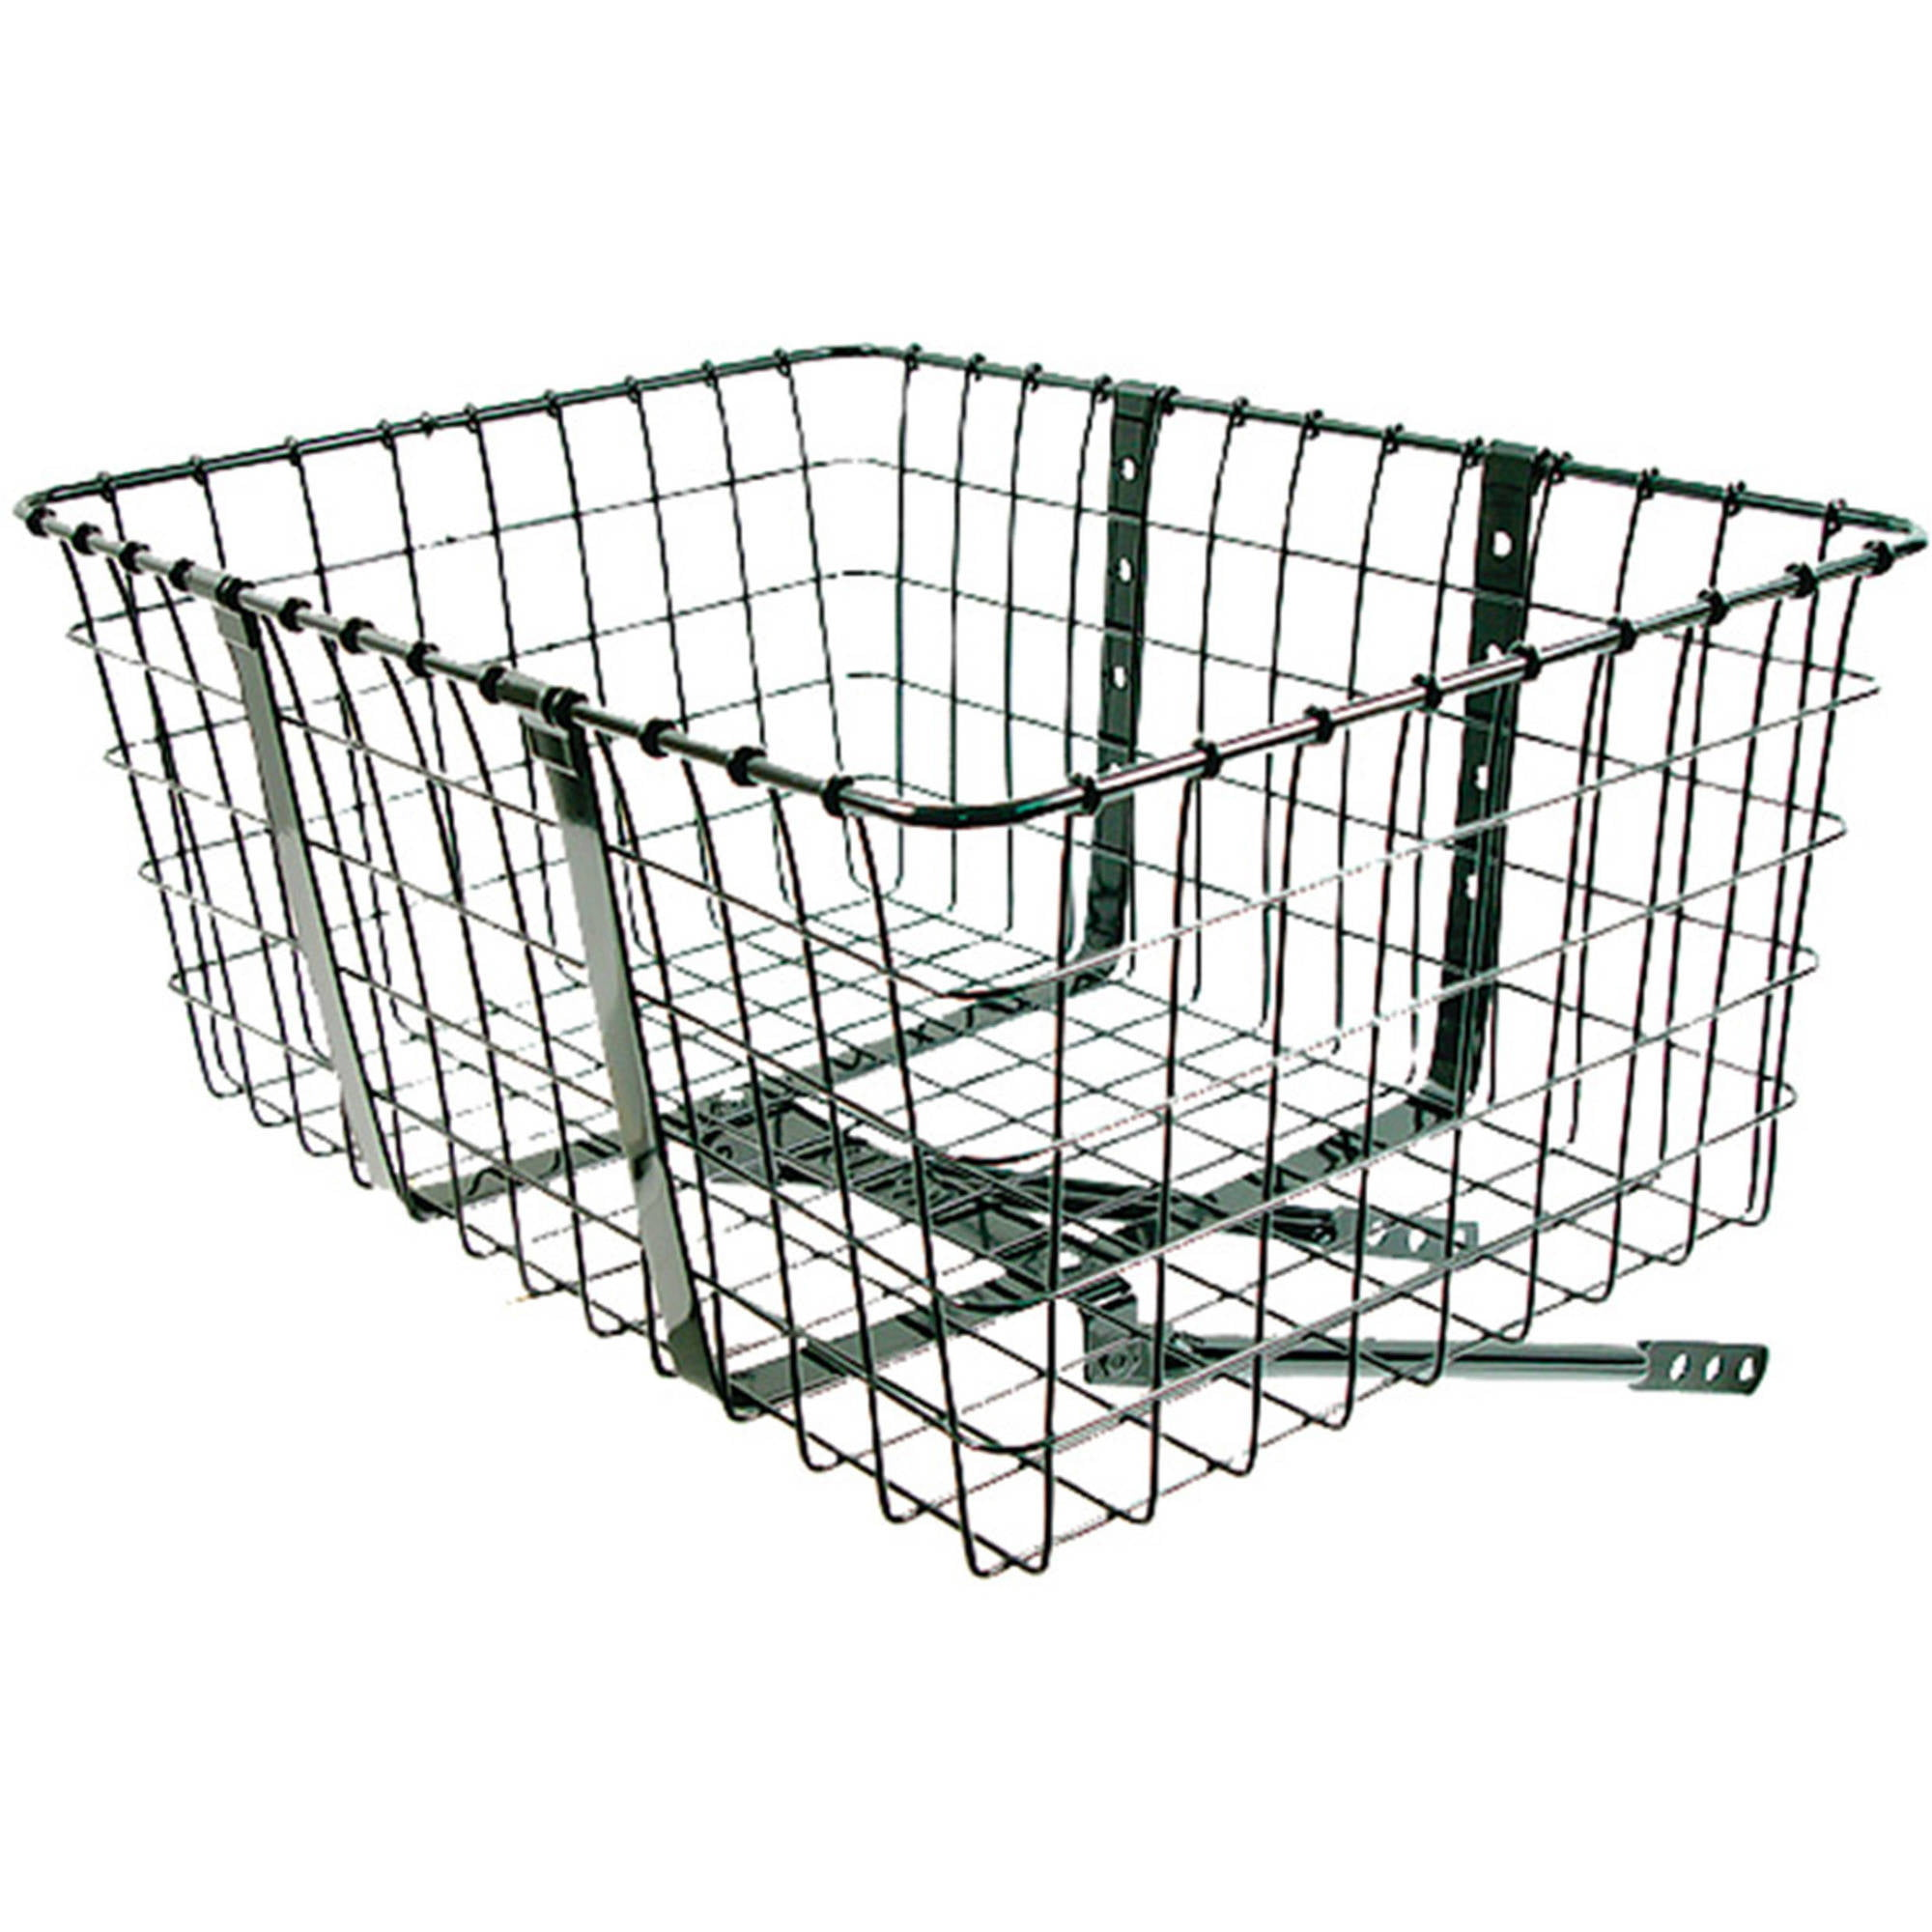 Wald 157 Front Giant Delivery Bicycle Basket 21 x 15 x 9 Black